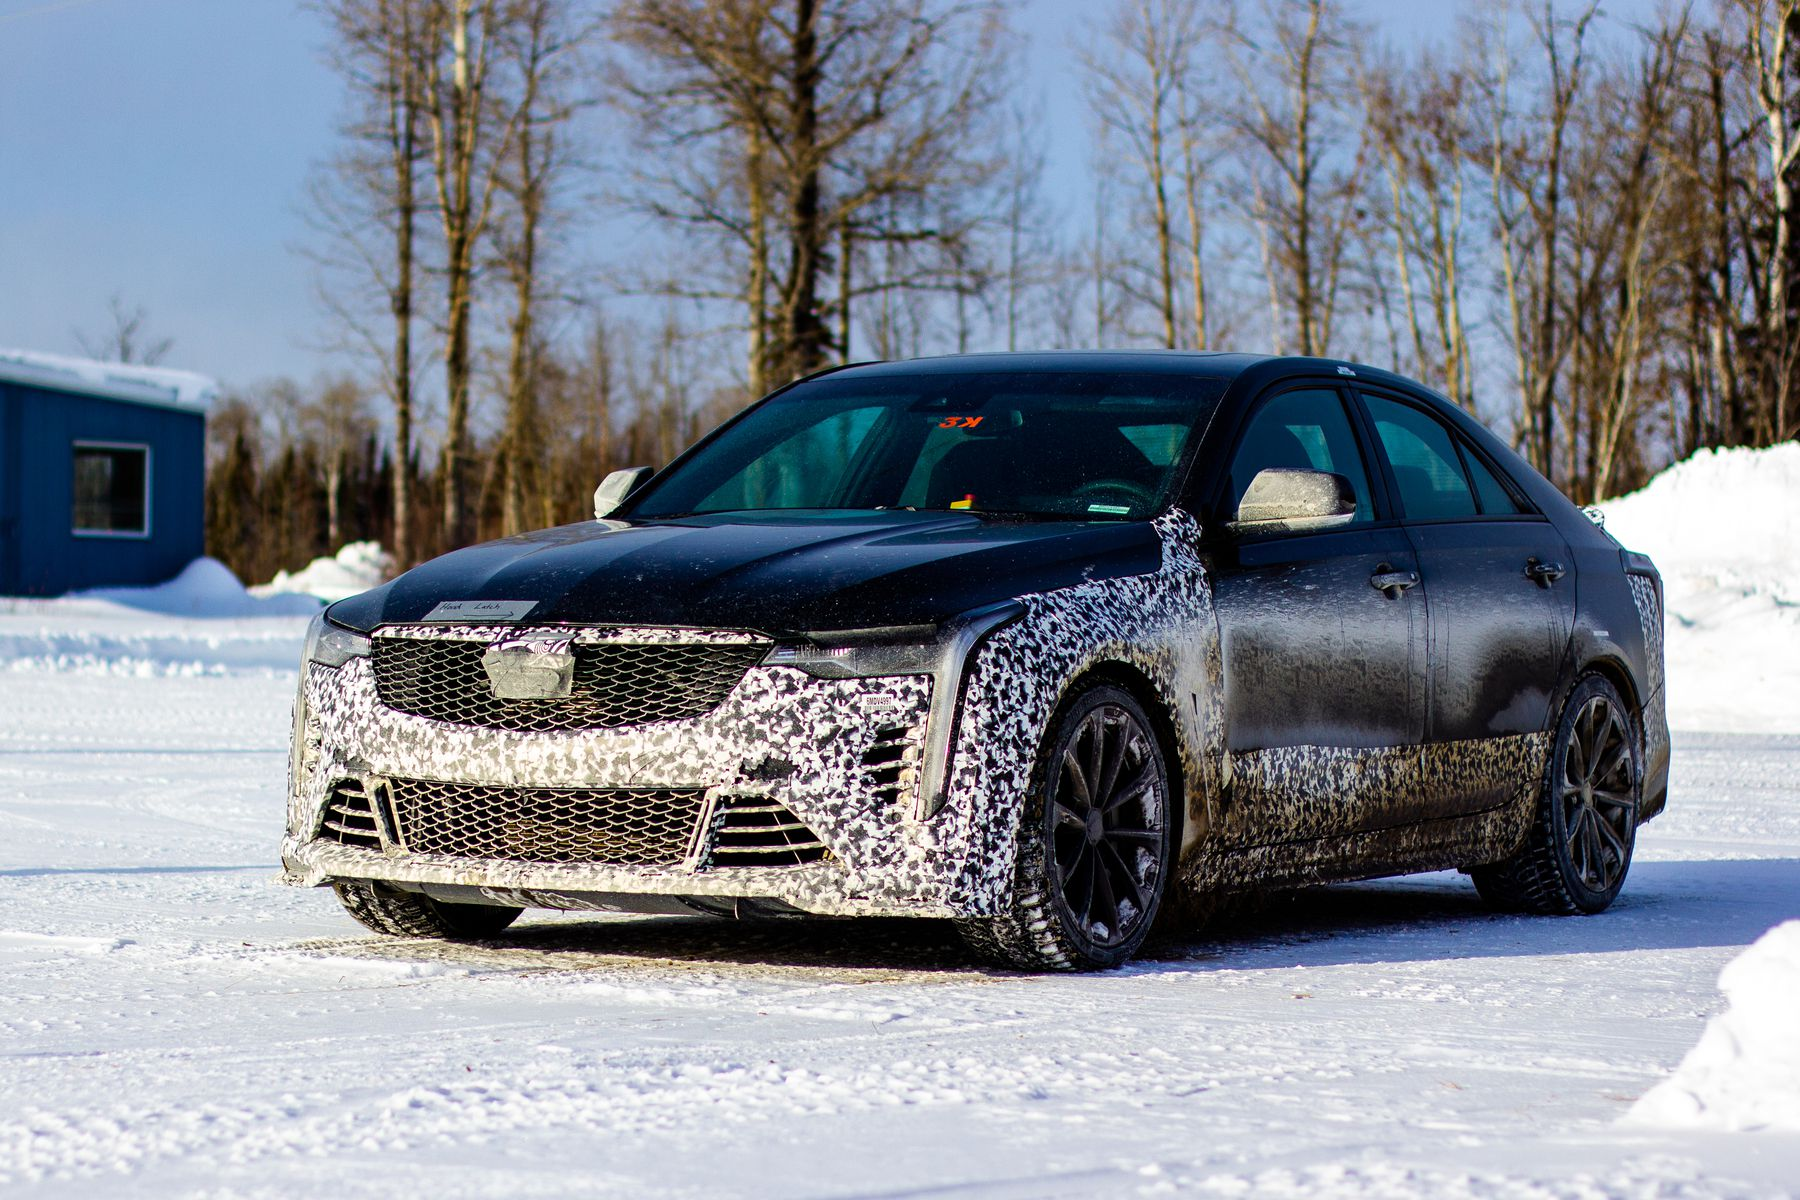 The Cadillac Blackwing undergoes testing